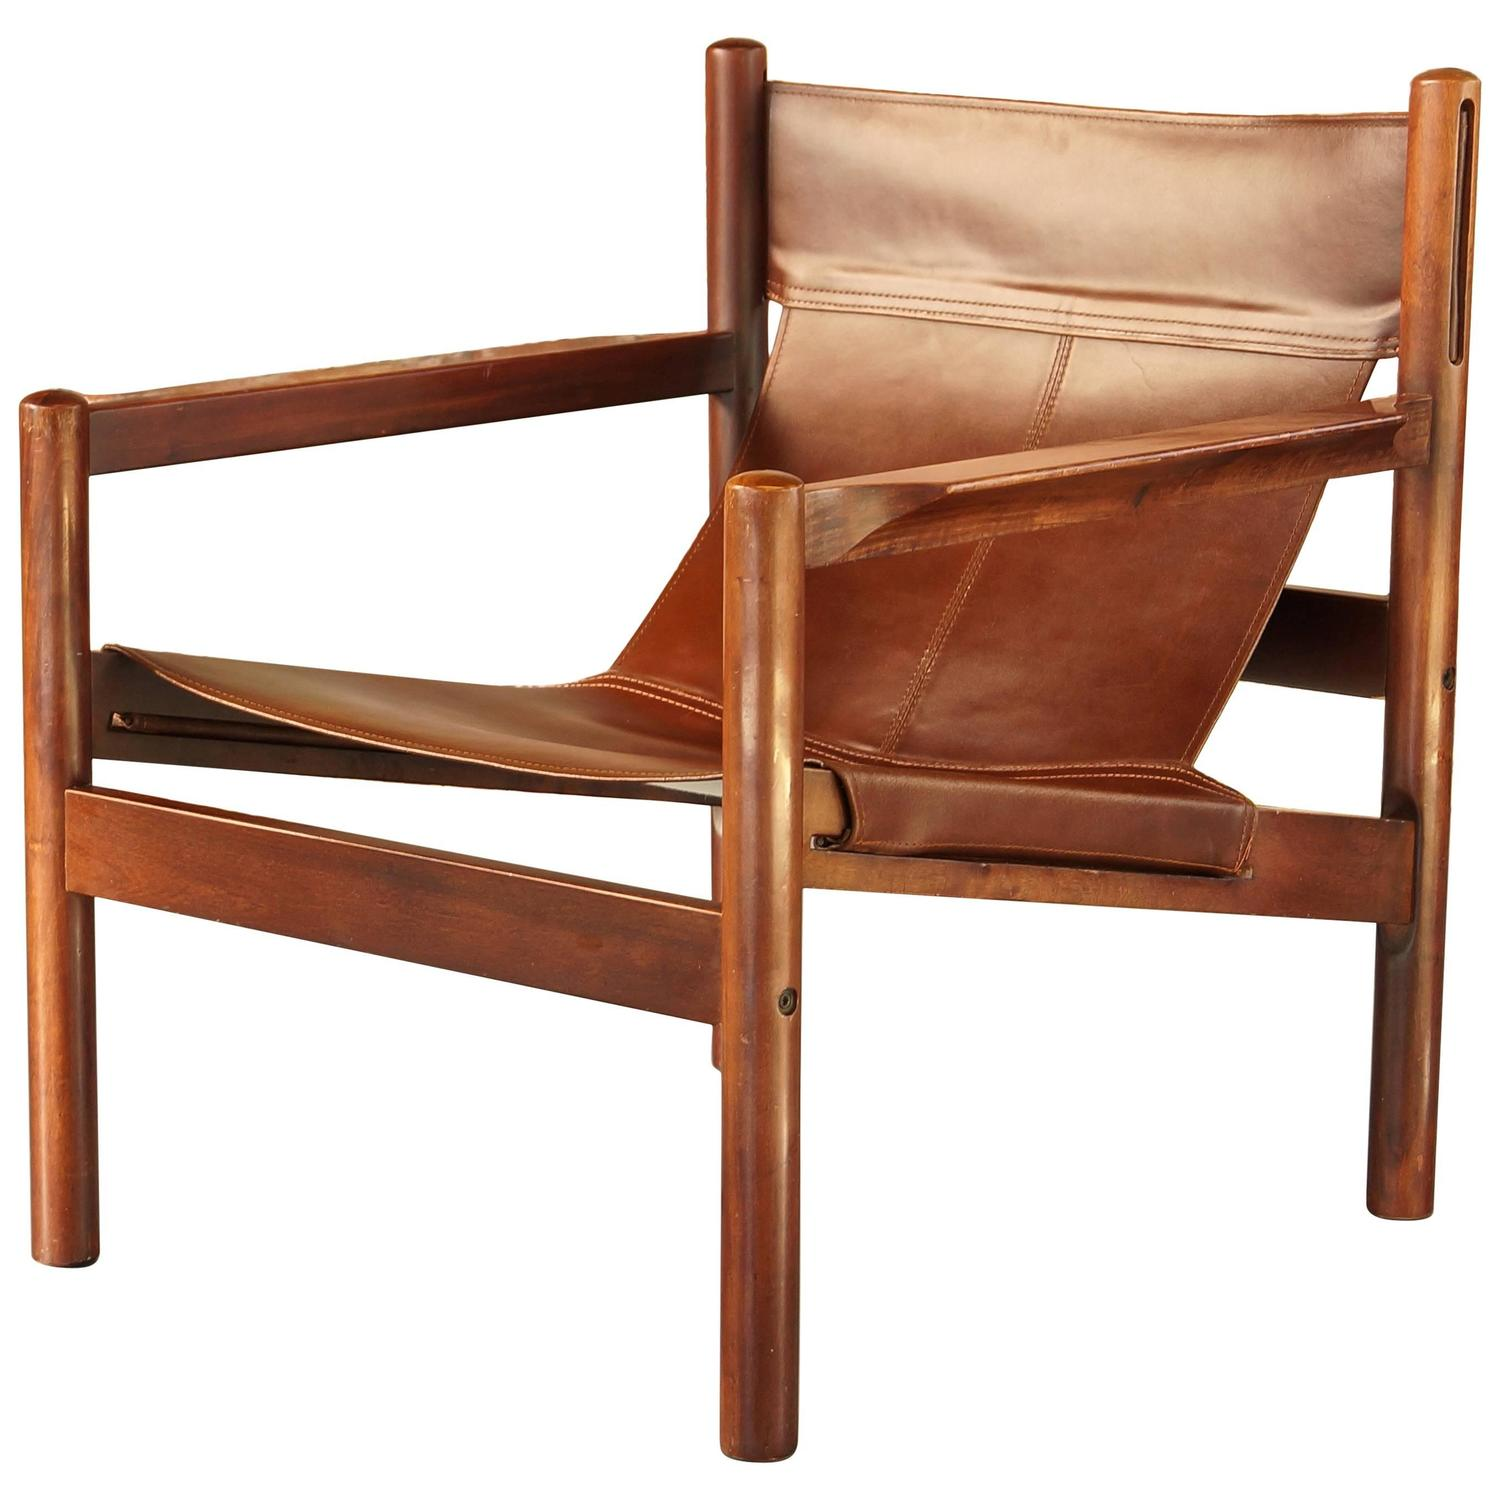 Michel Arnoult Roxinho Tan Leather Safari Chair or Sling Chair